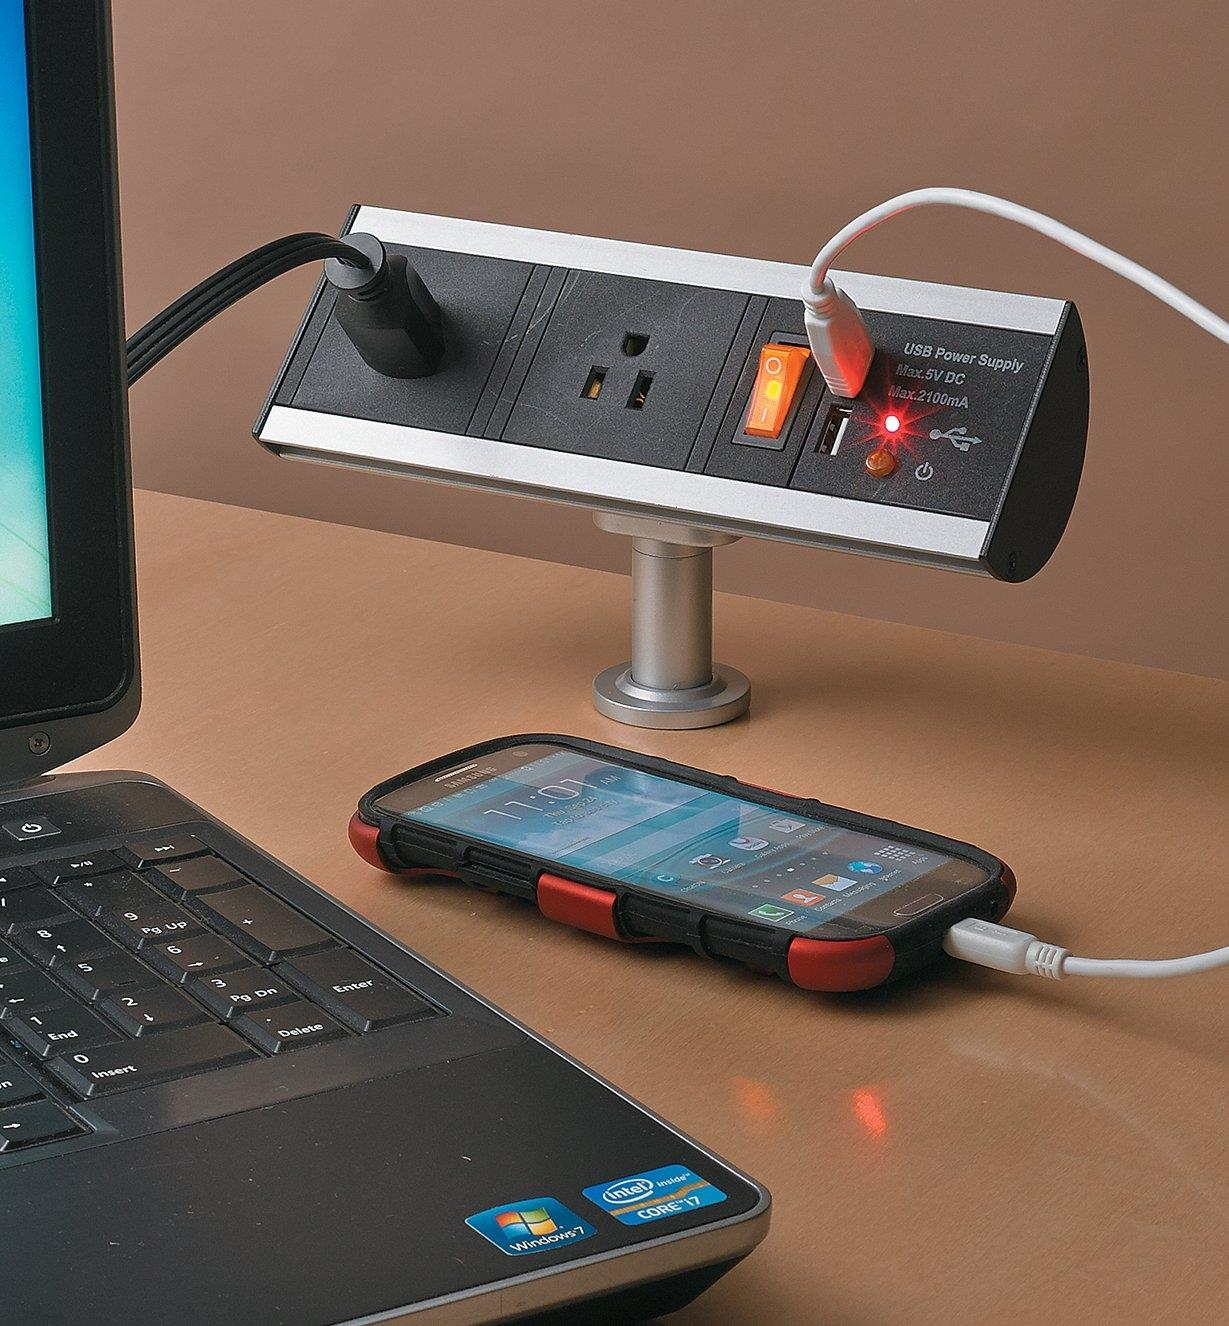 Cell phone and laptop plugged into a Stand-Off Power Bar installed in a desk